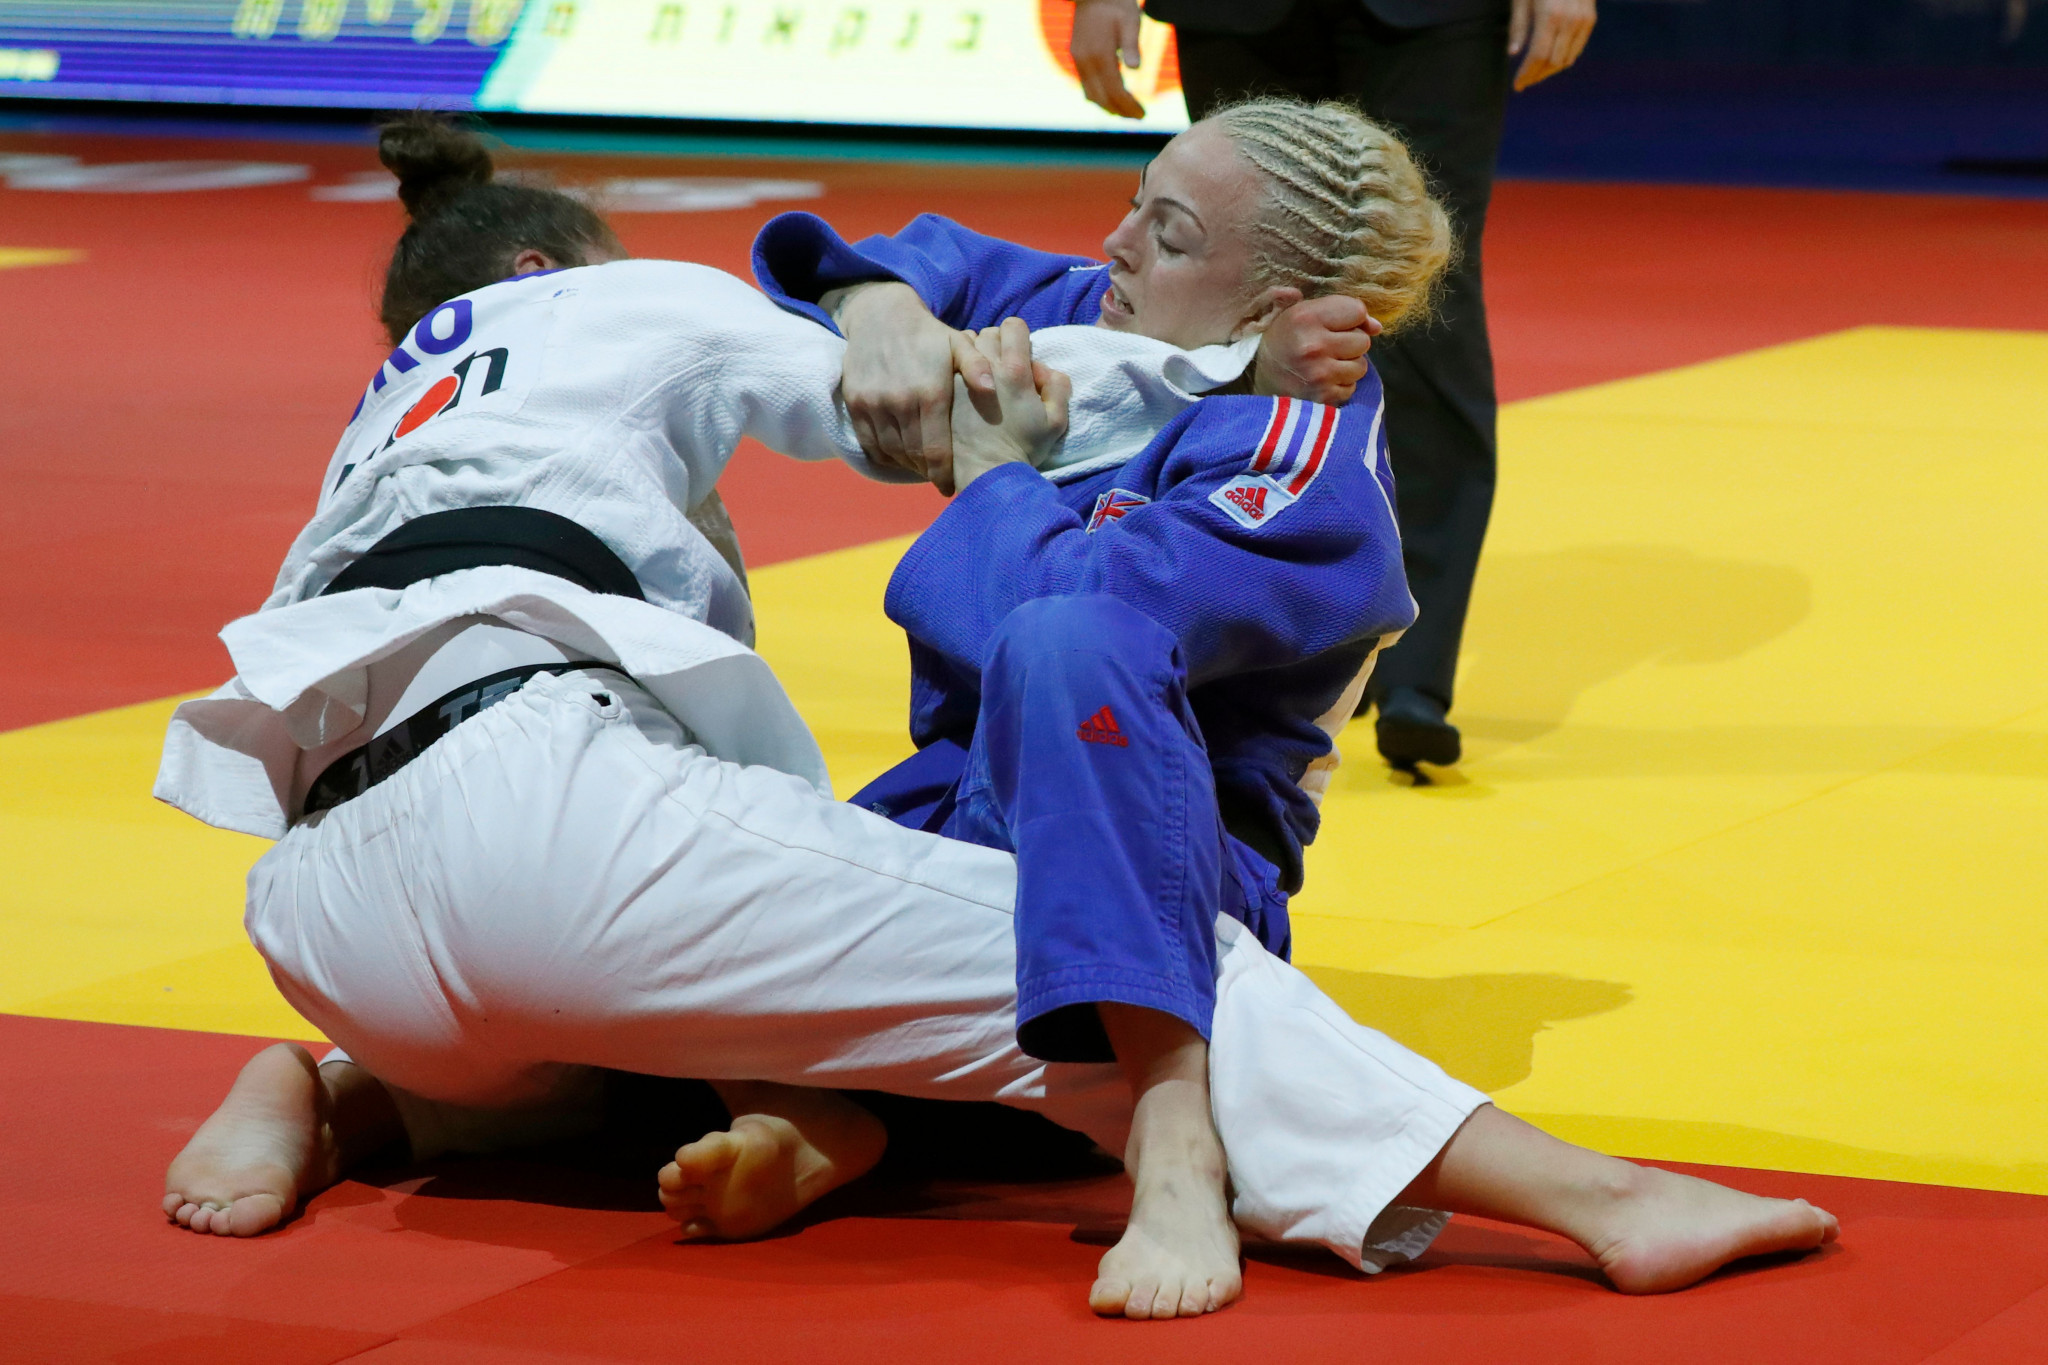 British Judo confirm 14 member team for World Championships in Baku